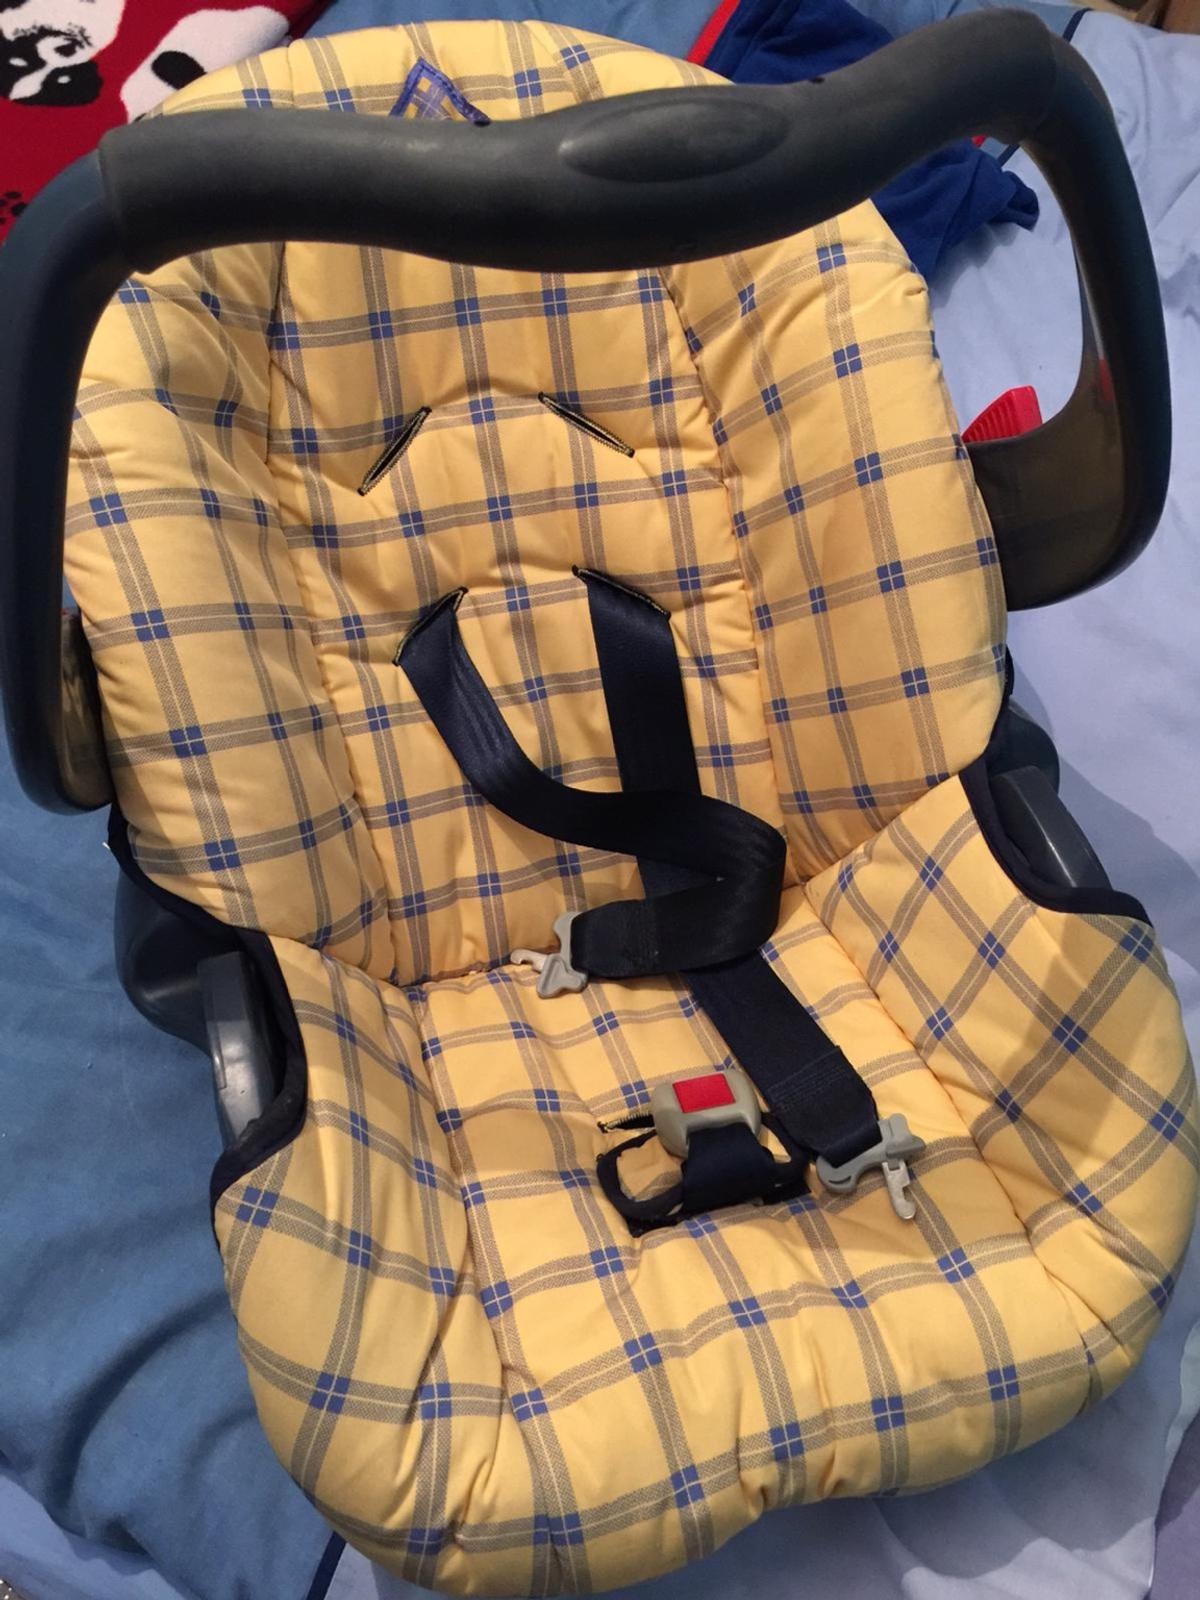 Used baby car seat no longer required in good condition.